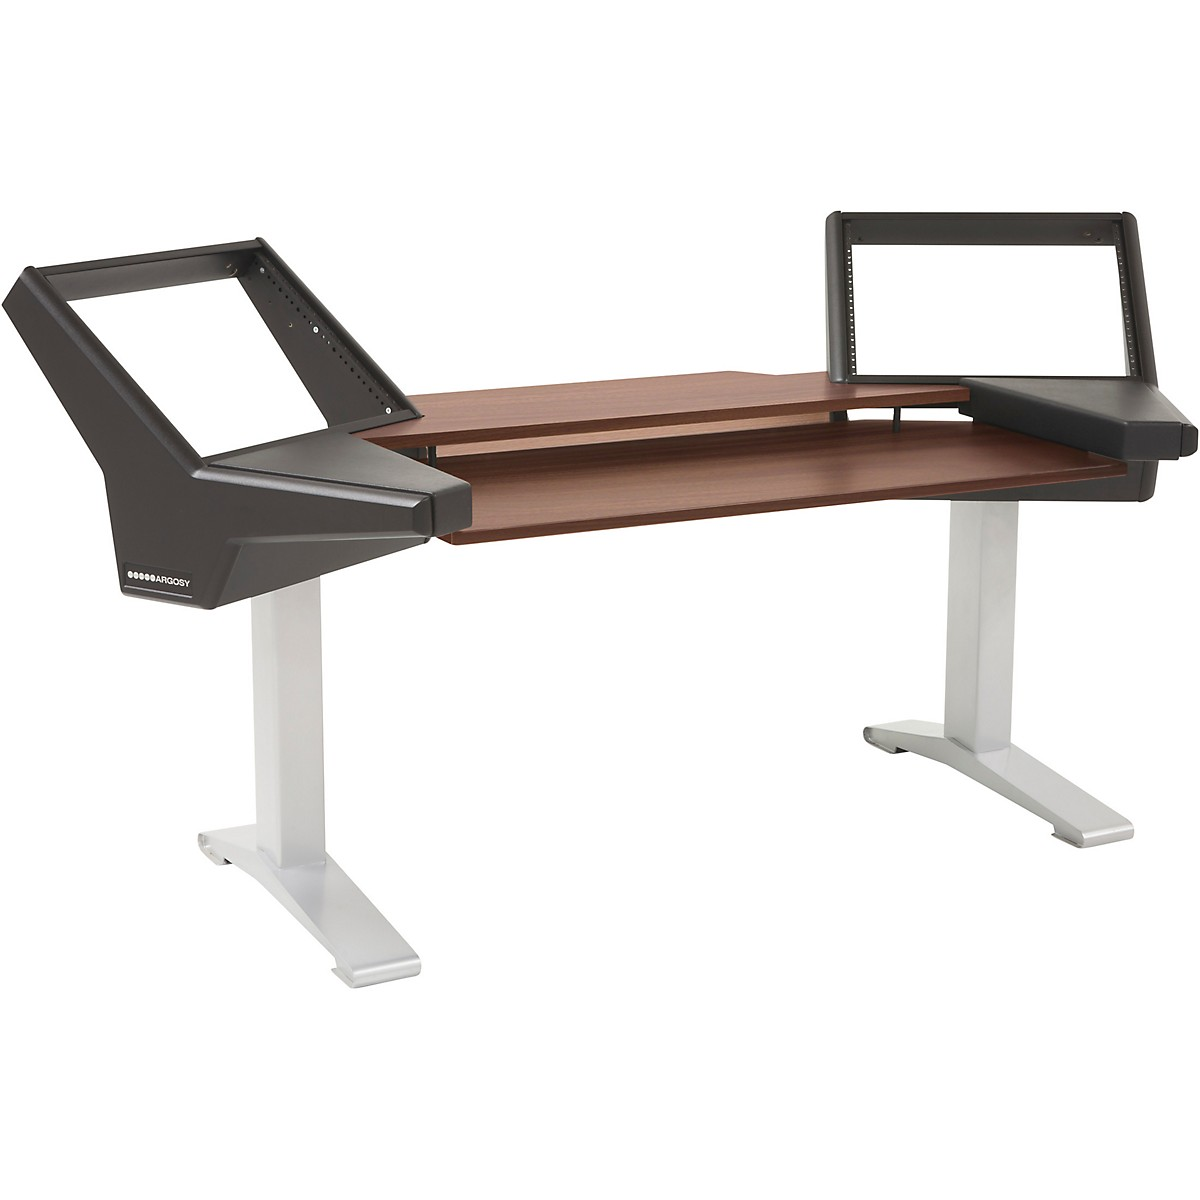 Argosy Halo Keyboard Desk with Black End Panels, Mahogany Surface, and Silver Legs